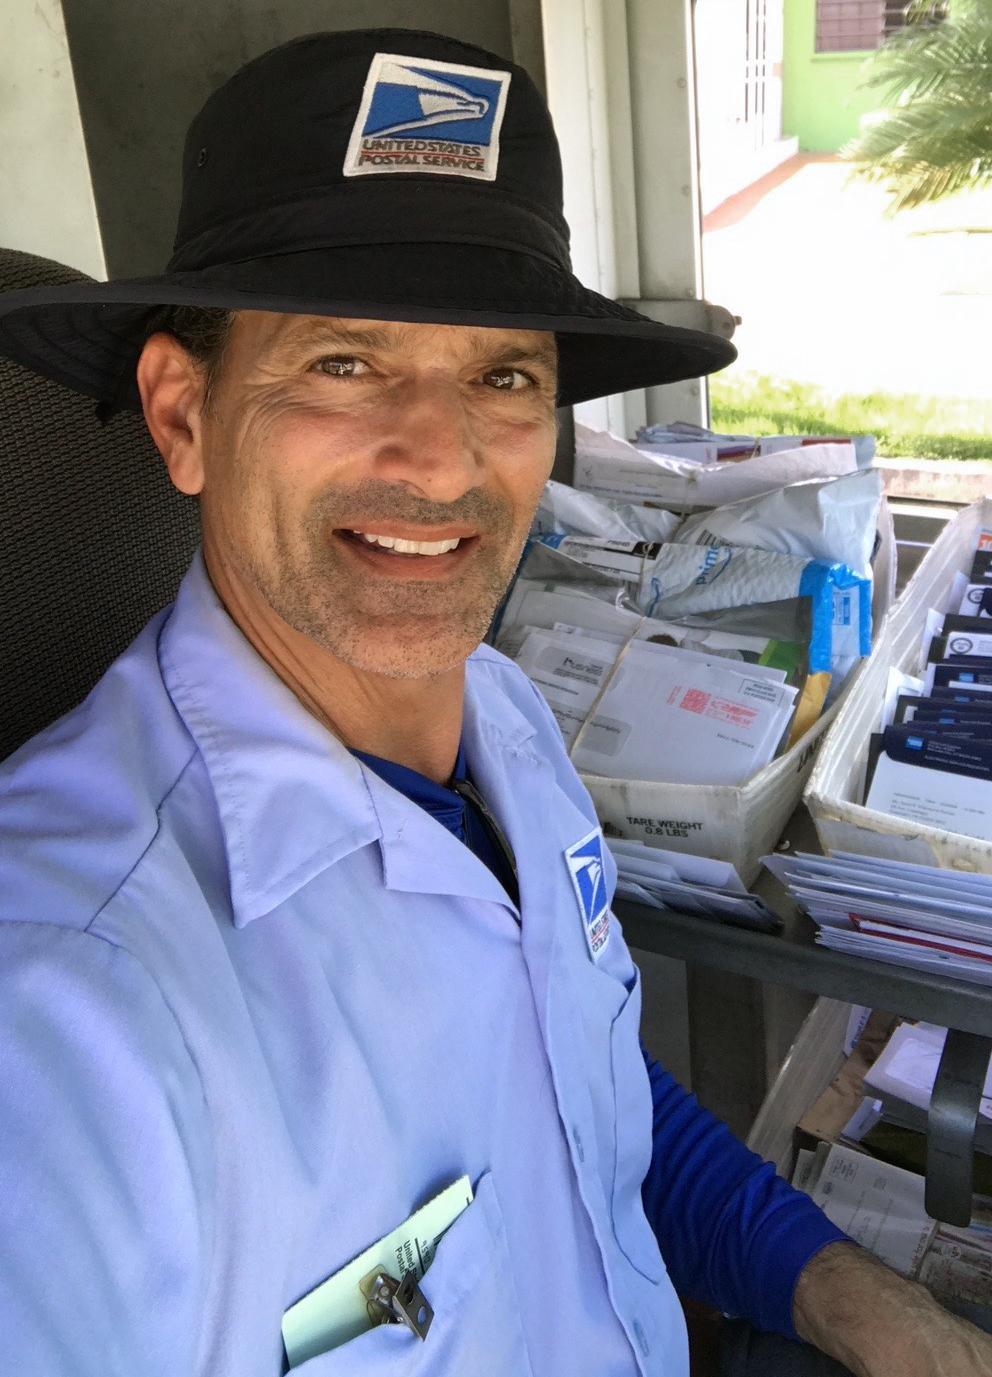 Carlos Rodriguez, 55, is a mail carrier in Guaynabo, Puerto Rico.